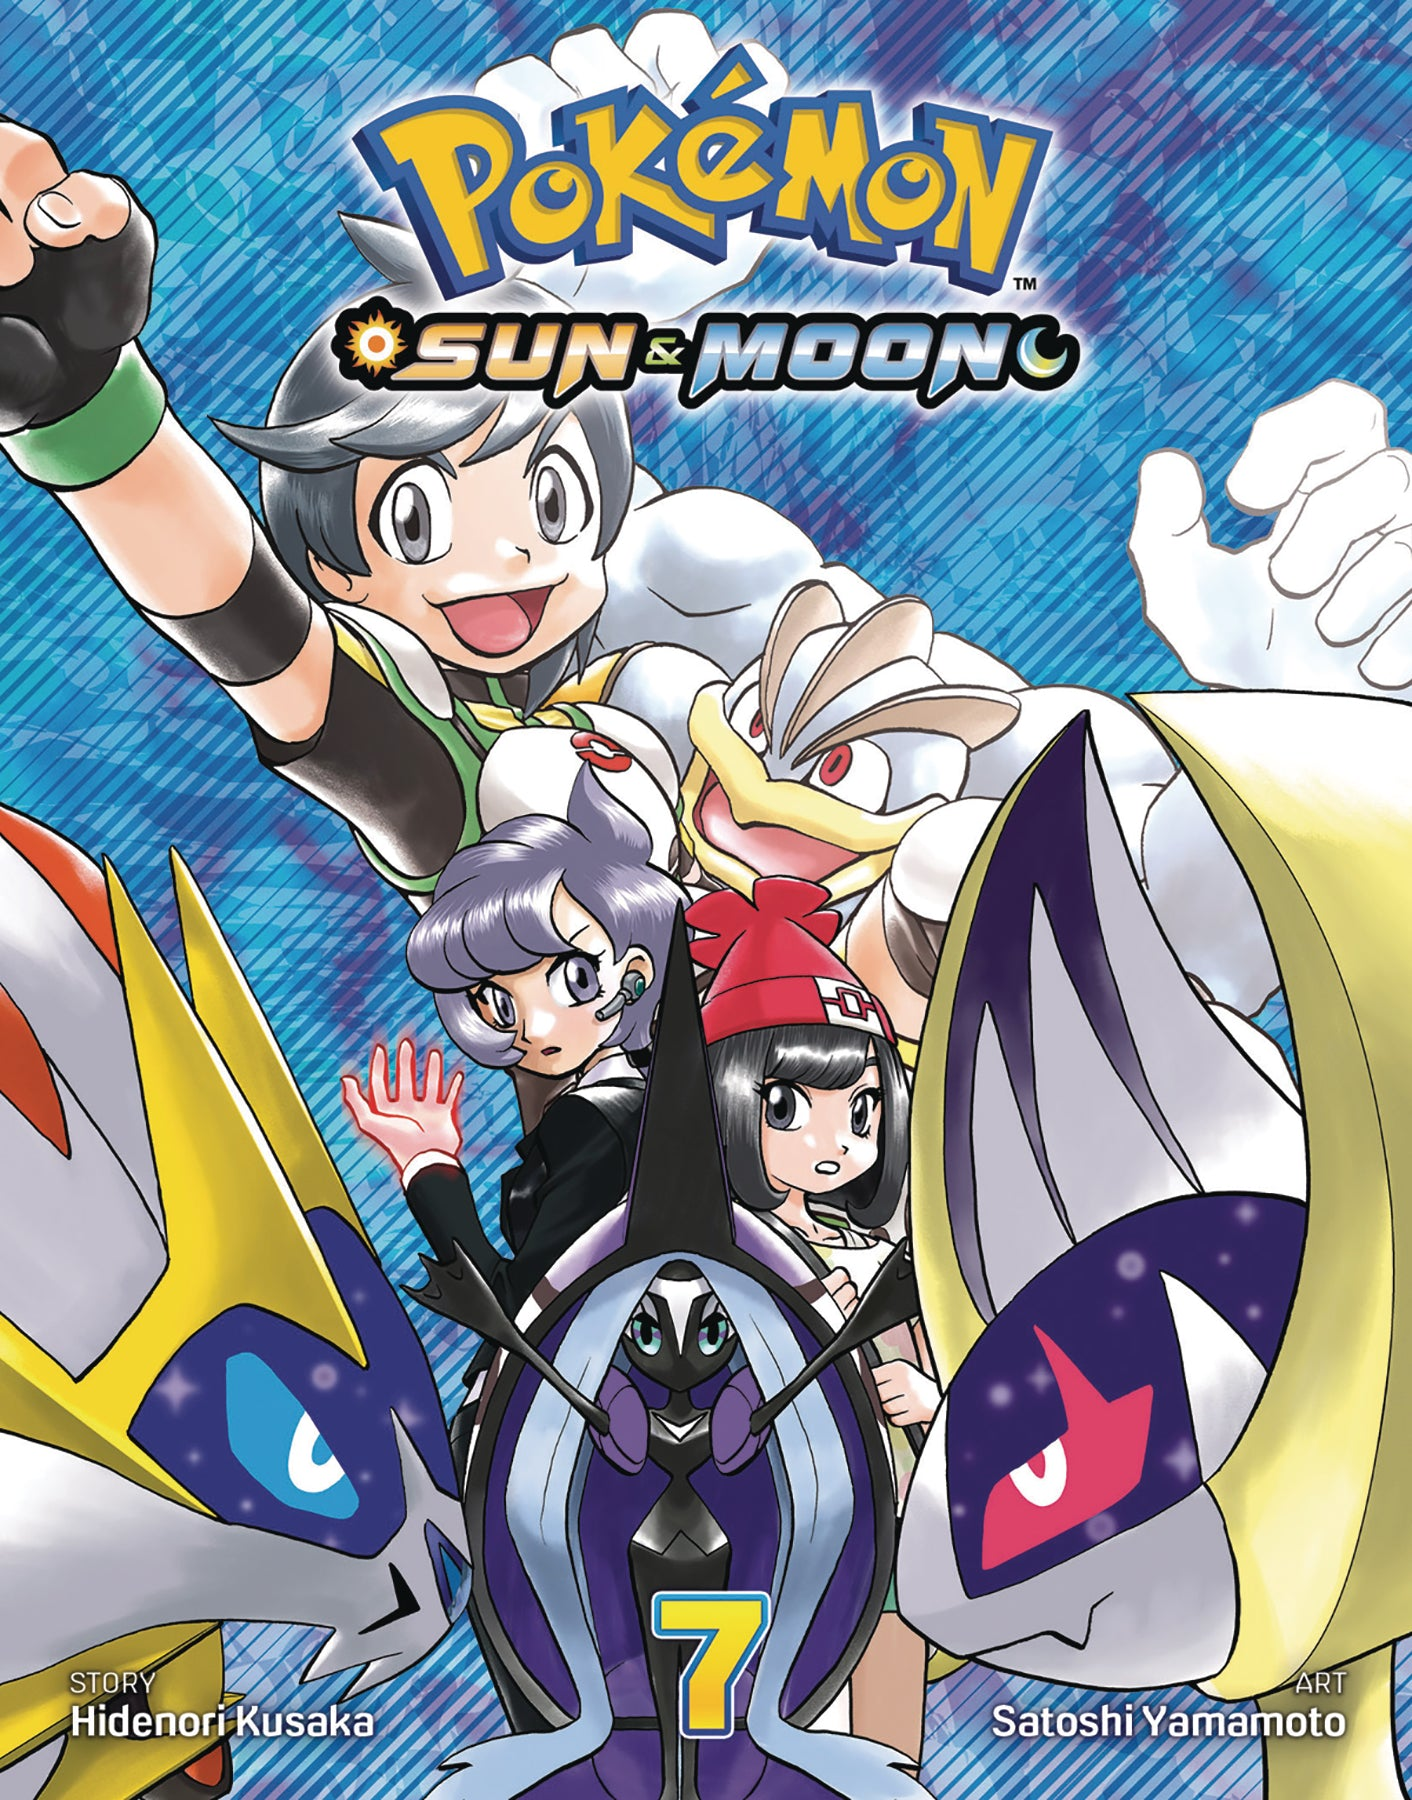 POKEMON SUN & MOON GN VOL 07 (C: 1-1-2)